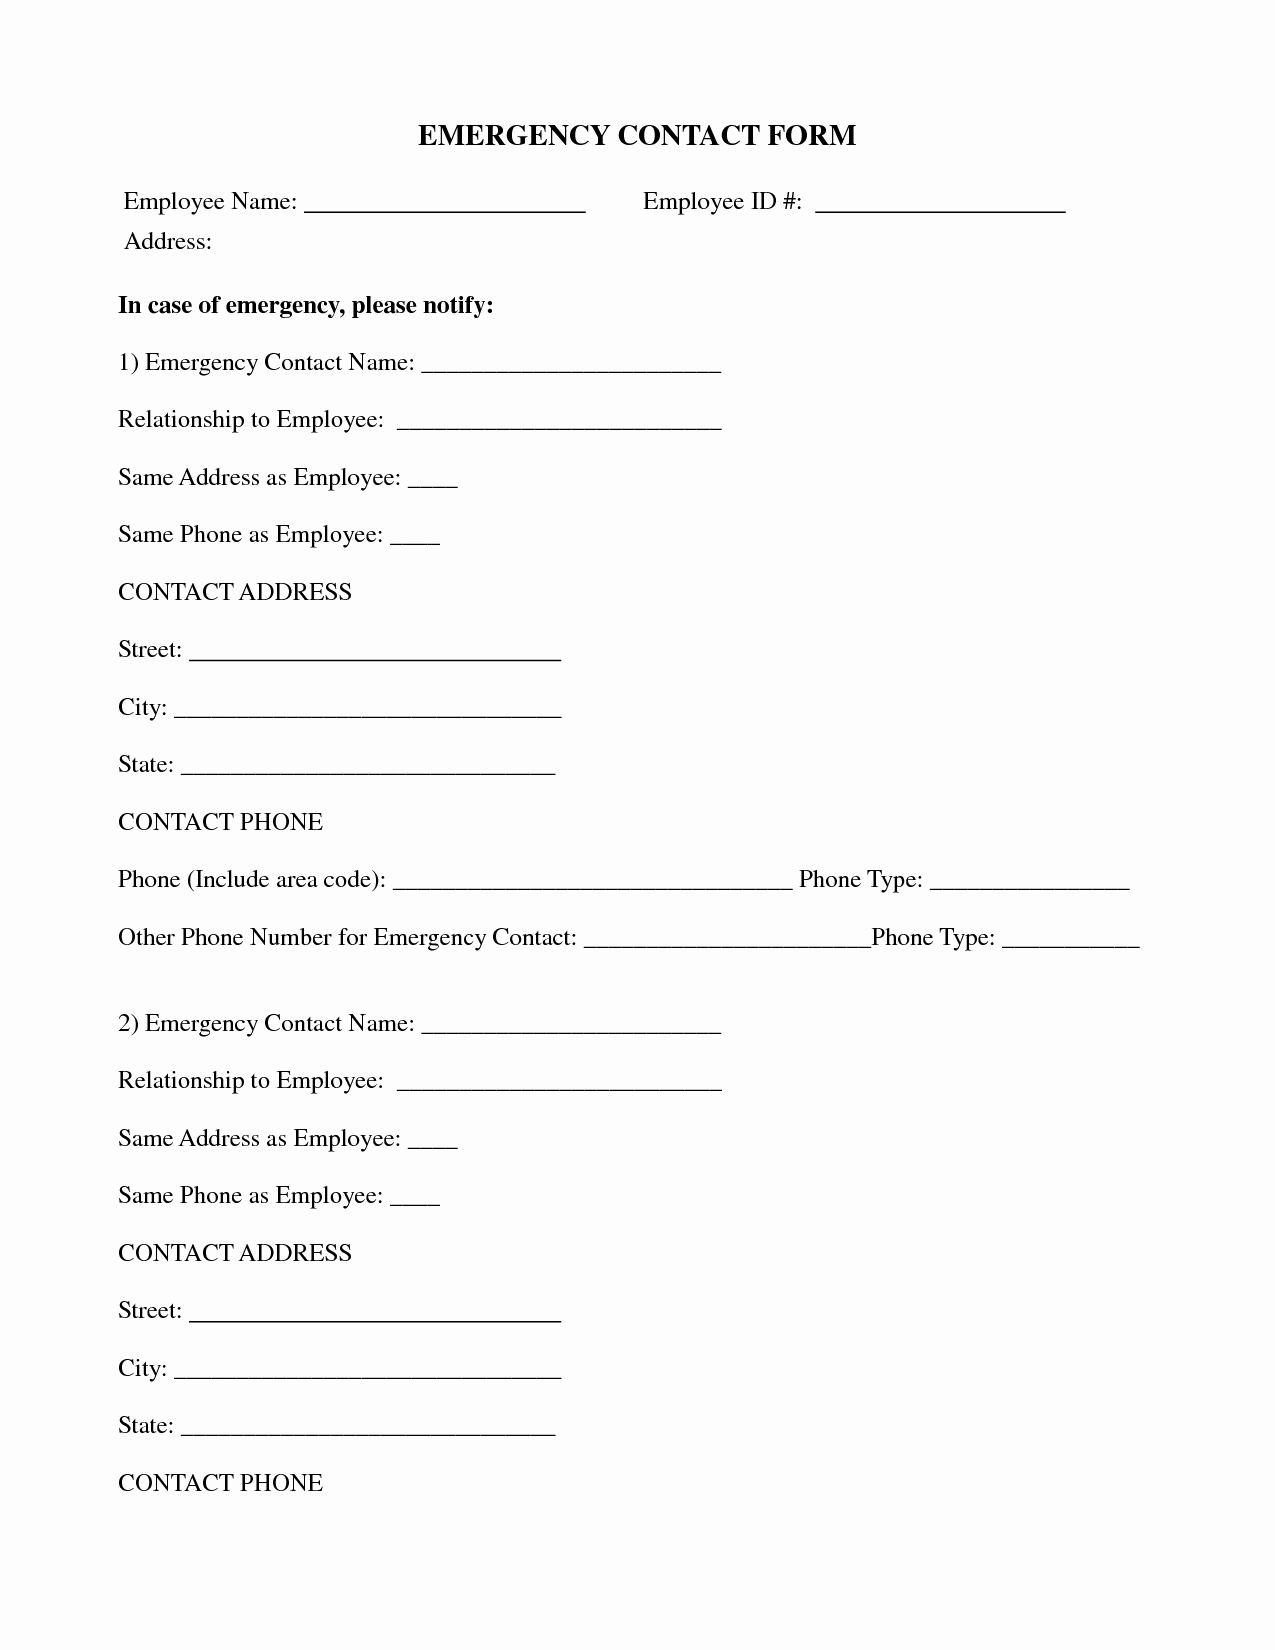 Emergency Contact form Template Free Elegant 11 Best Of Emergency Contact form for Businesses